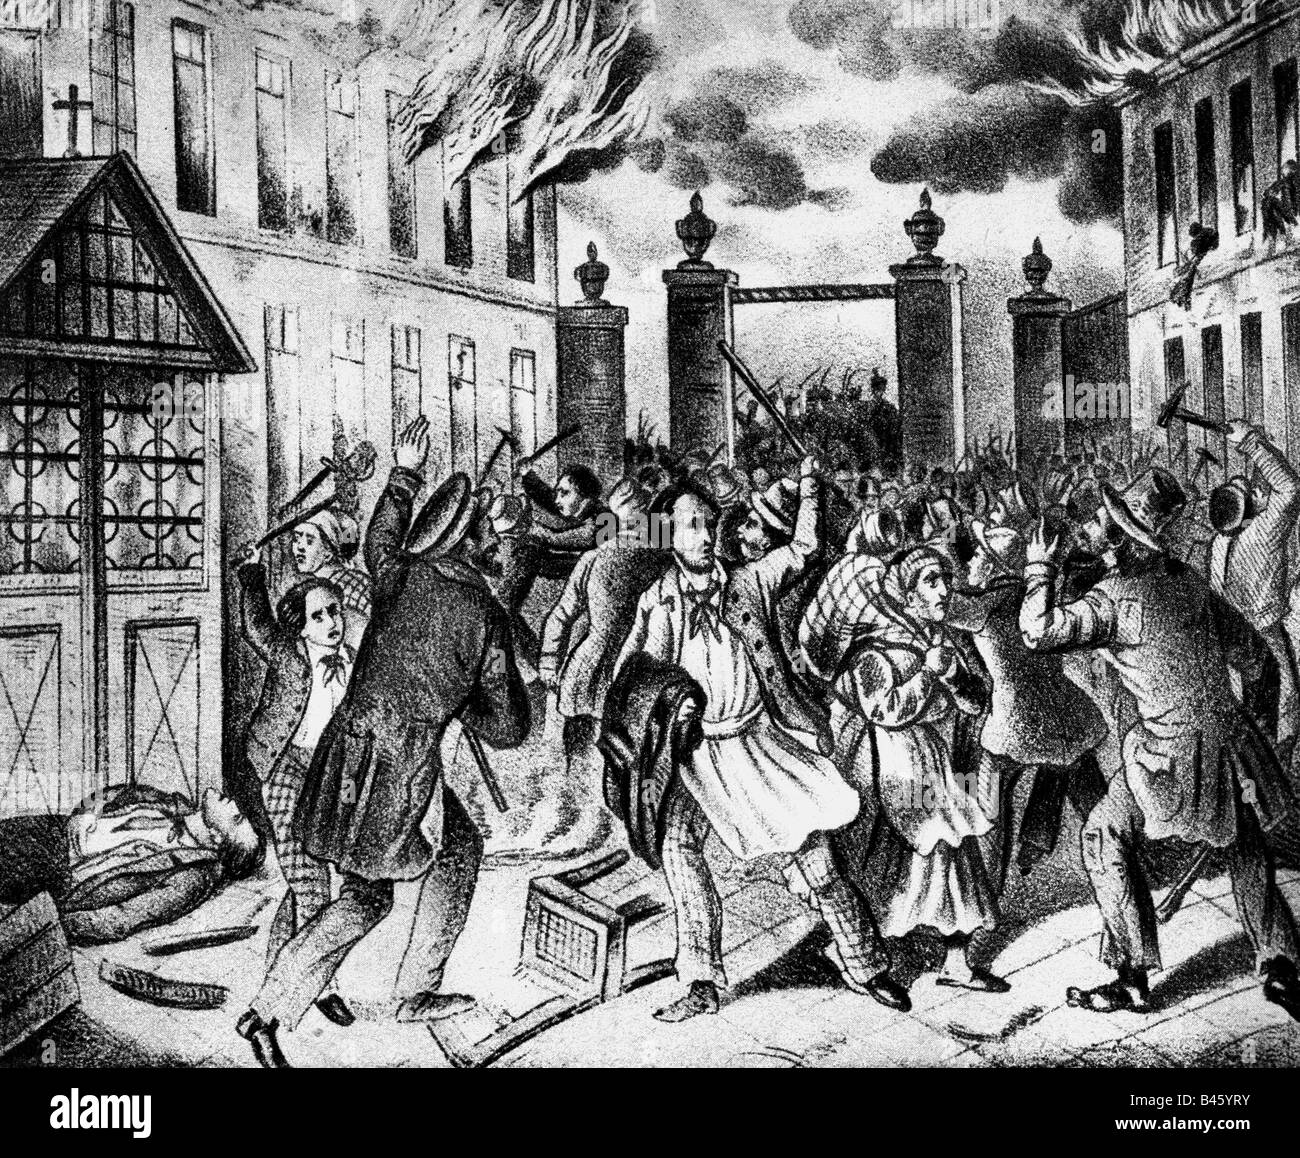 events, revolutions 1848 - 1849, Austria, March Revolution, storming of the Mariahilfer line, Vienna, 13.3.1848, - Stock Image